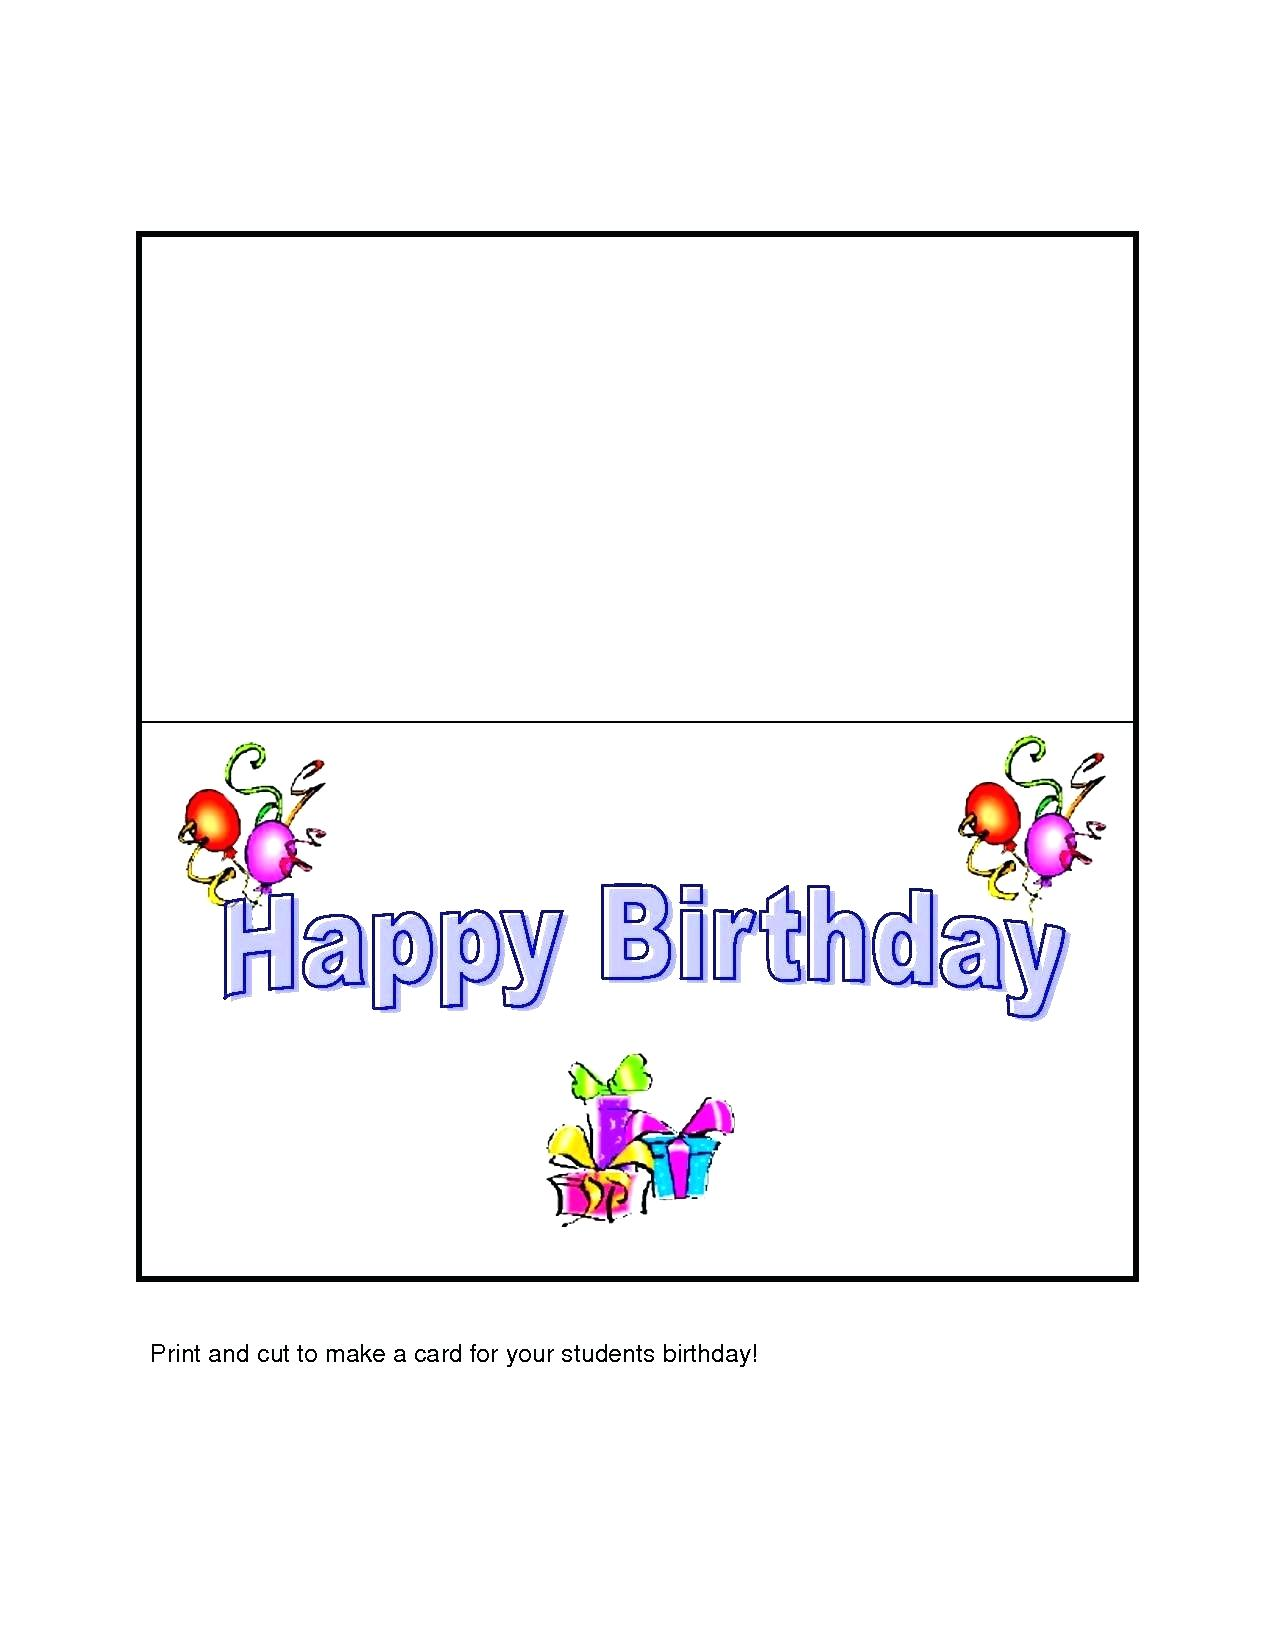 birthday card design template free ; happy-birthday-card-design-template-is-one-of-the-best-idea-to-create-your-invitation-with-amazing-7-free-download